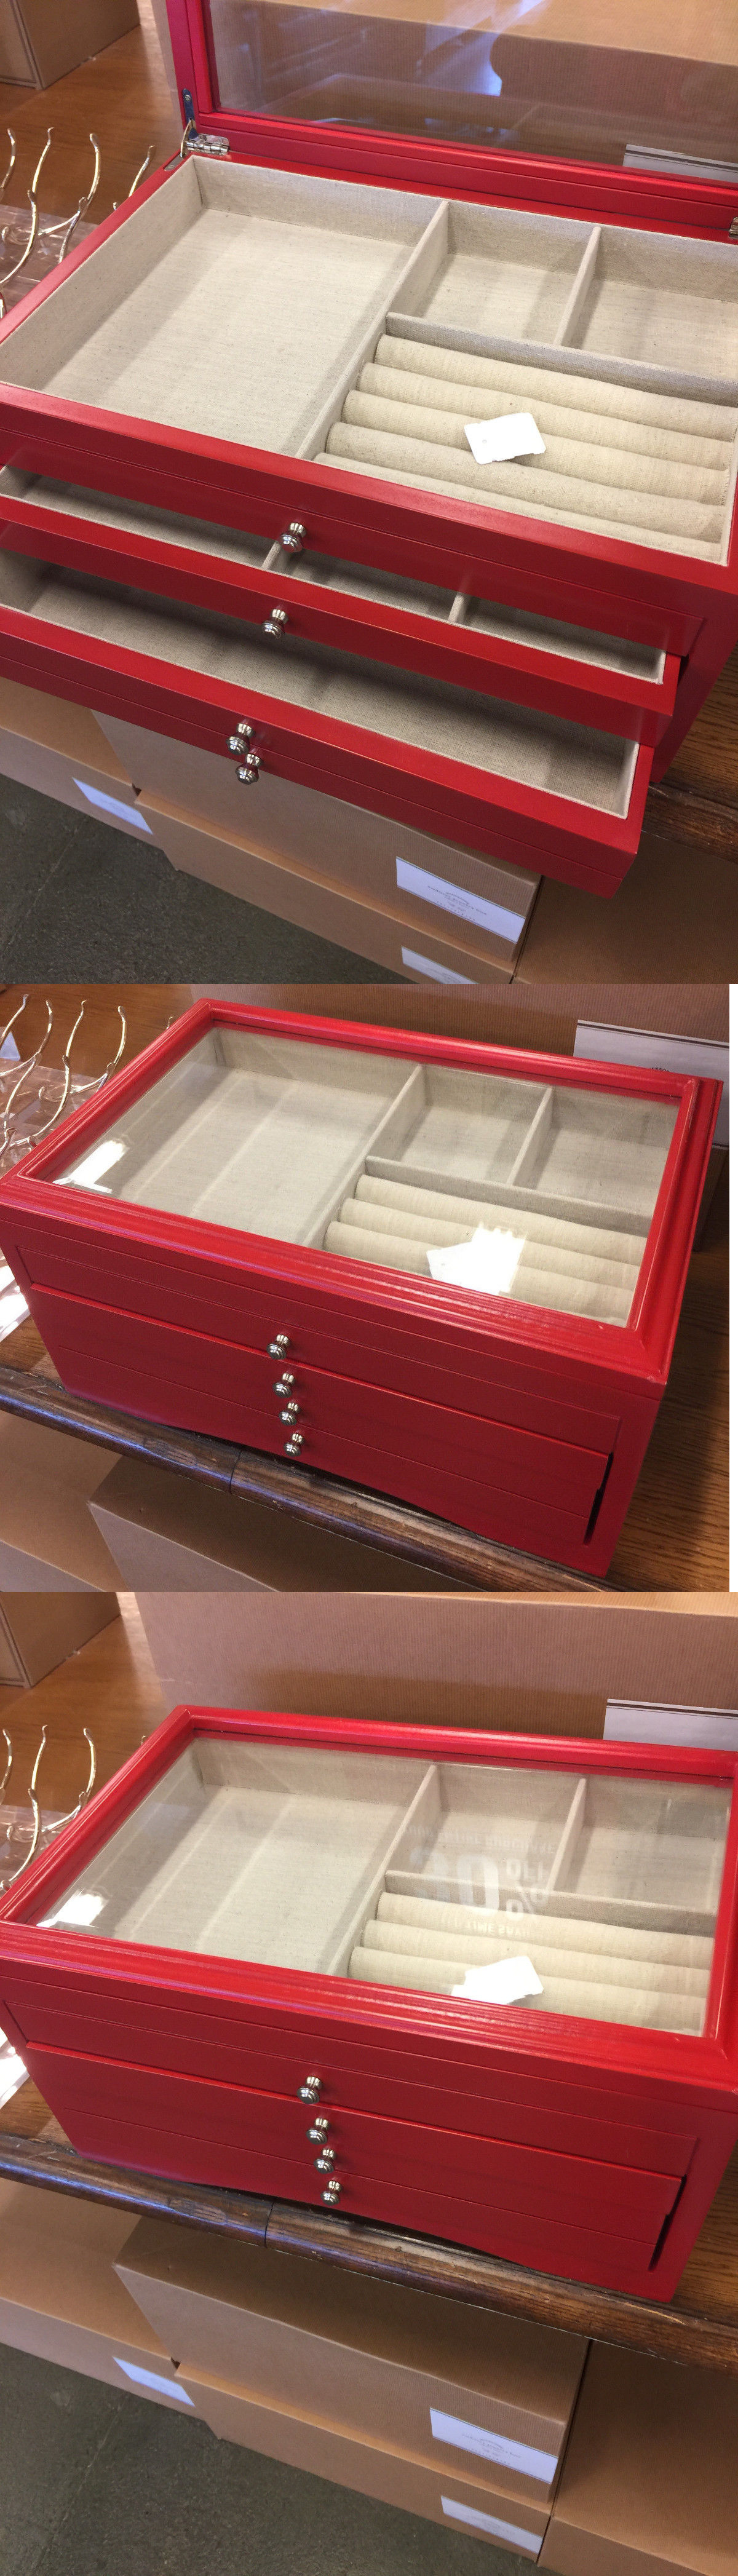 Jewelry Boxes 3820 Pottery Barn Very Large Andover Jewelry BoxRed